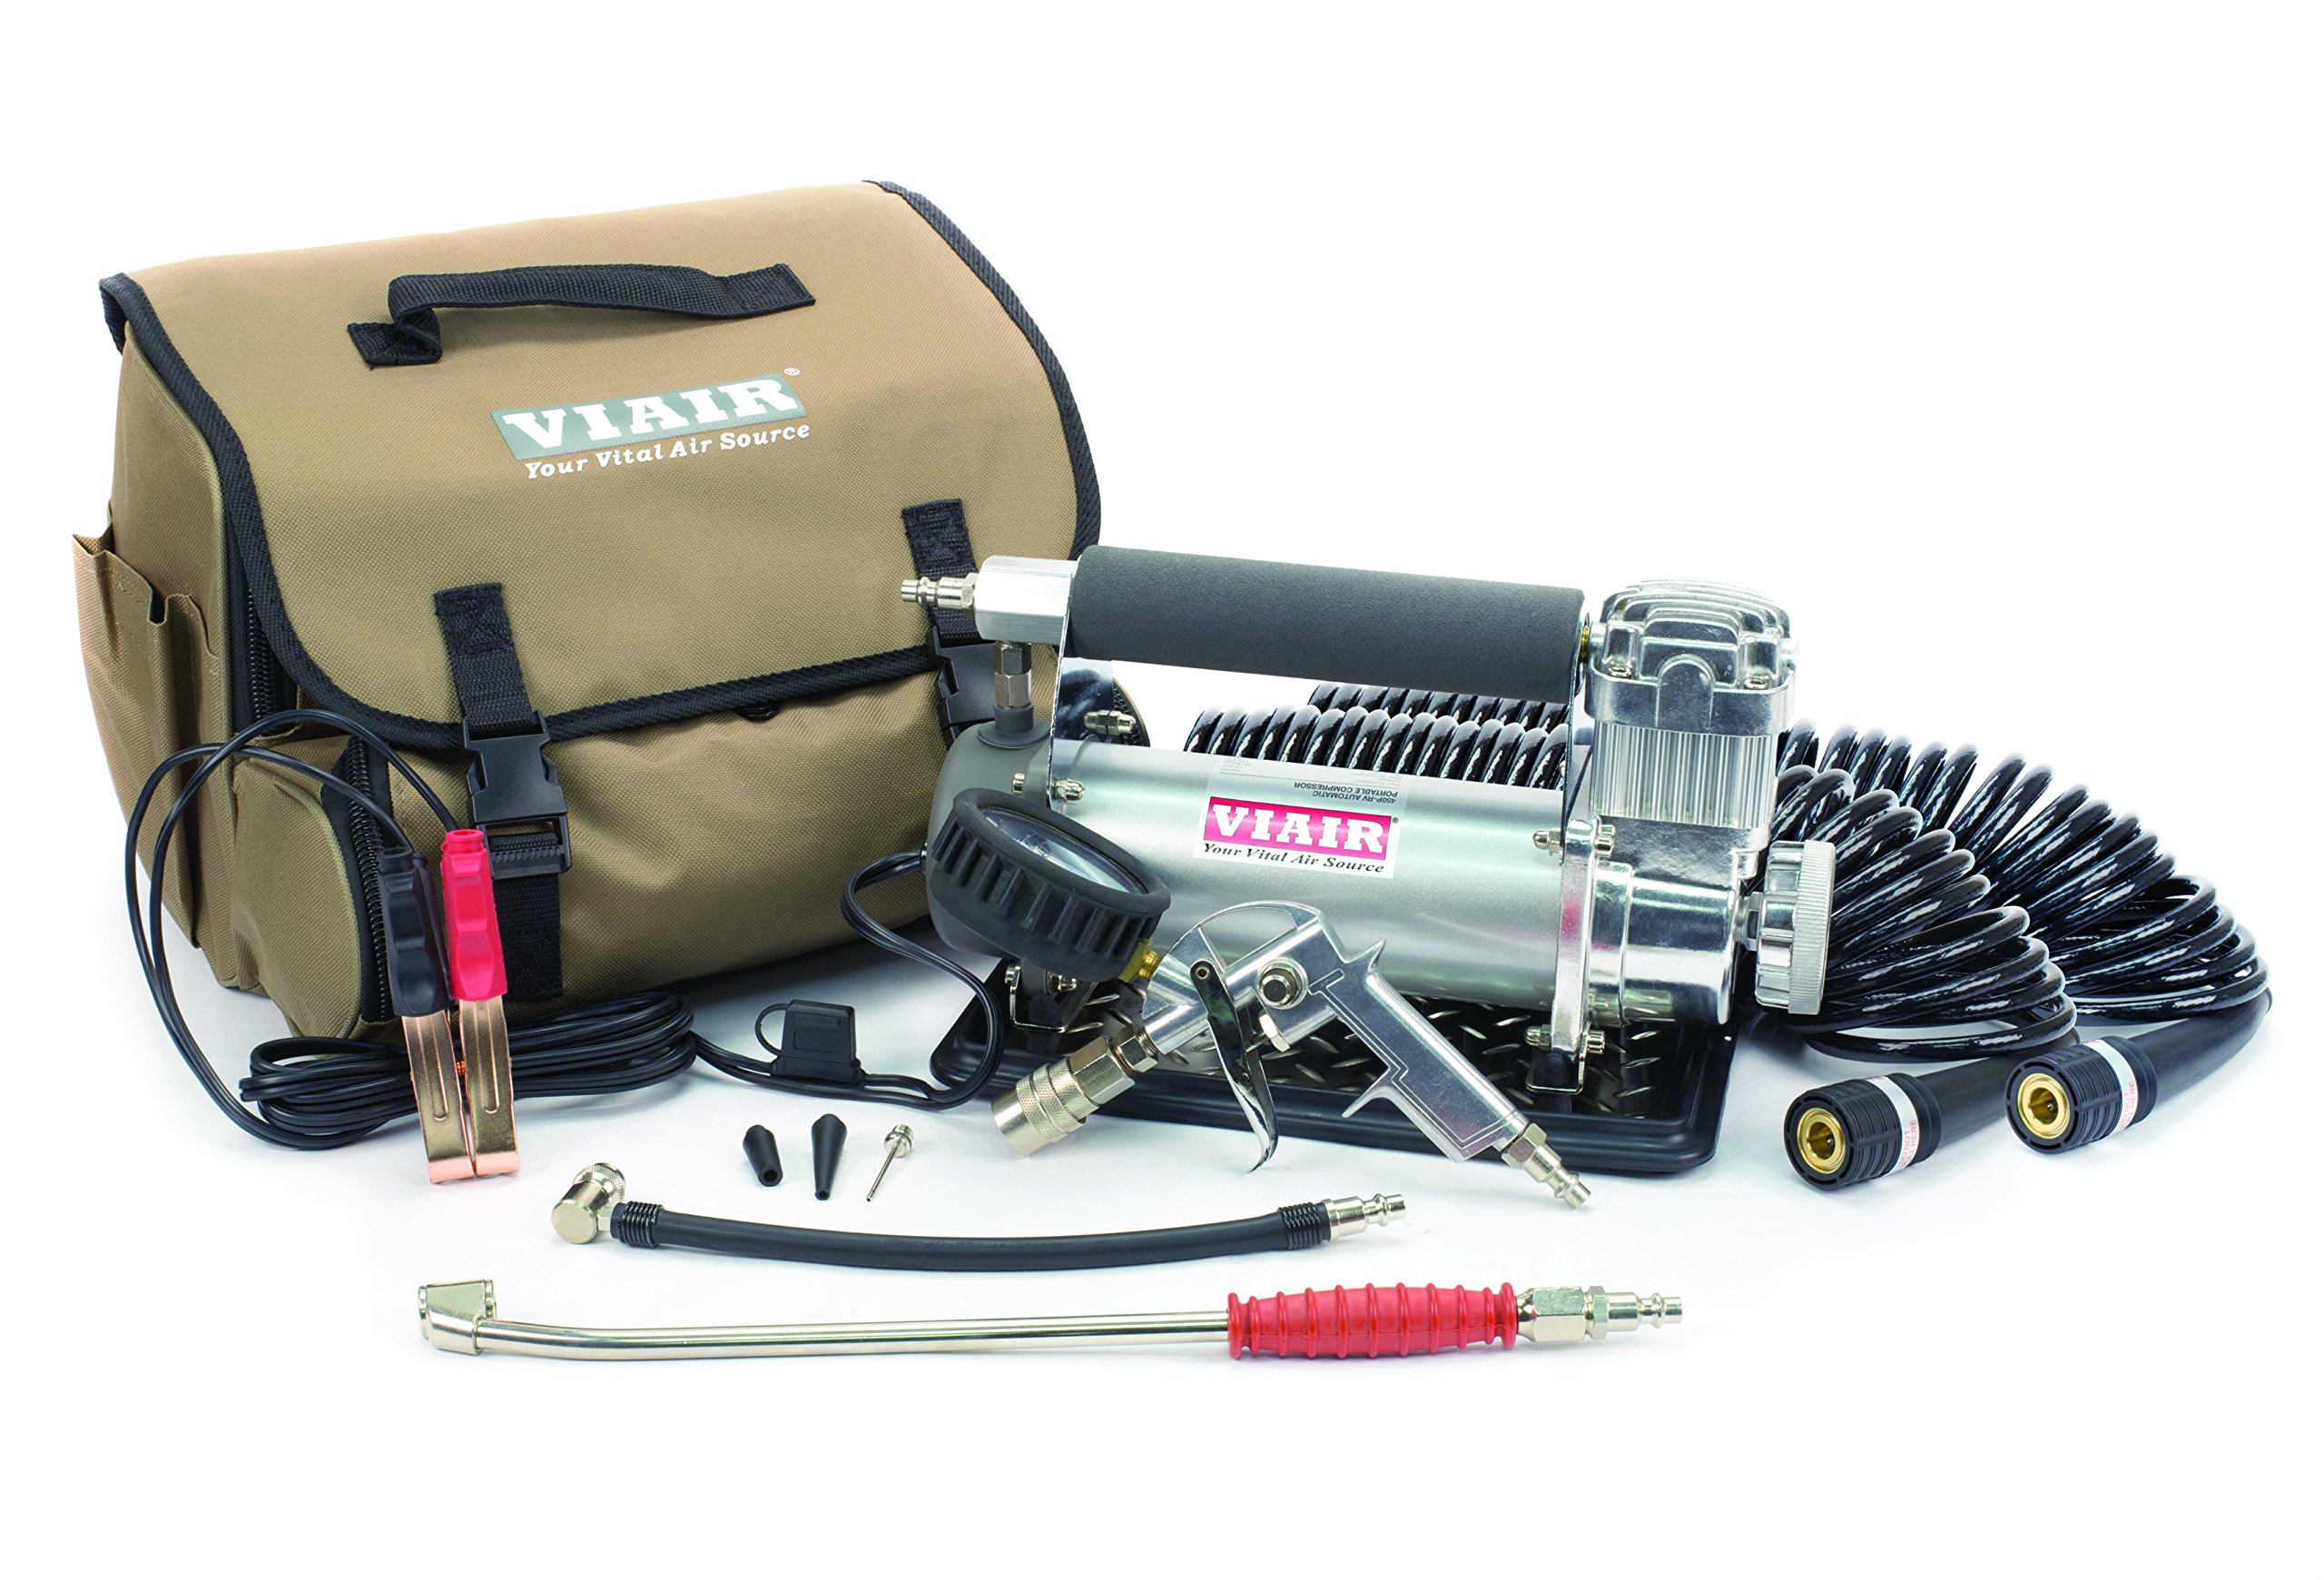 VIAIR 45053 Silver Automatic Portable Compressor Kit (450P-RV) by VIAIR (Image #1)